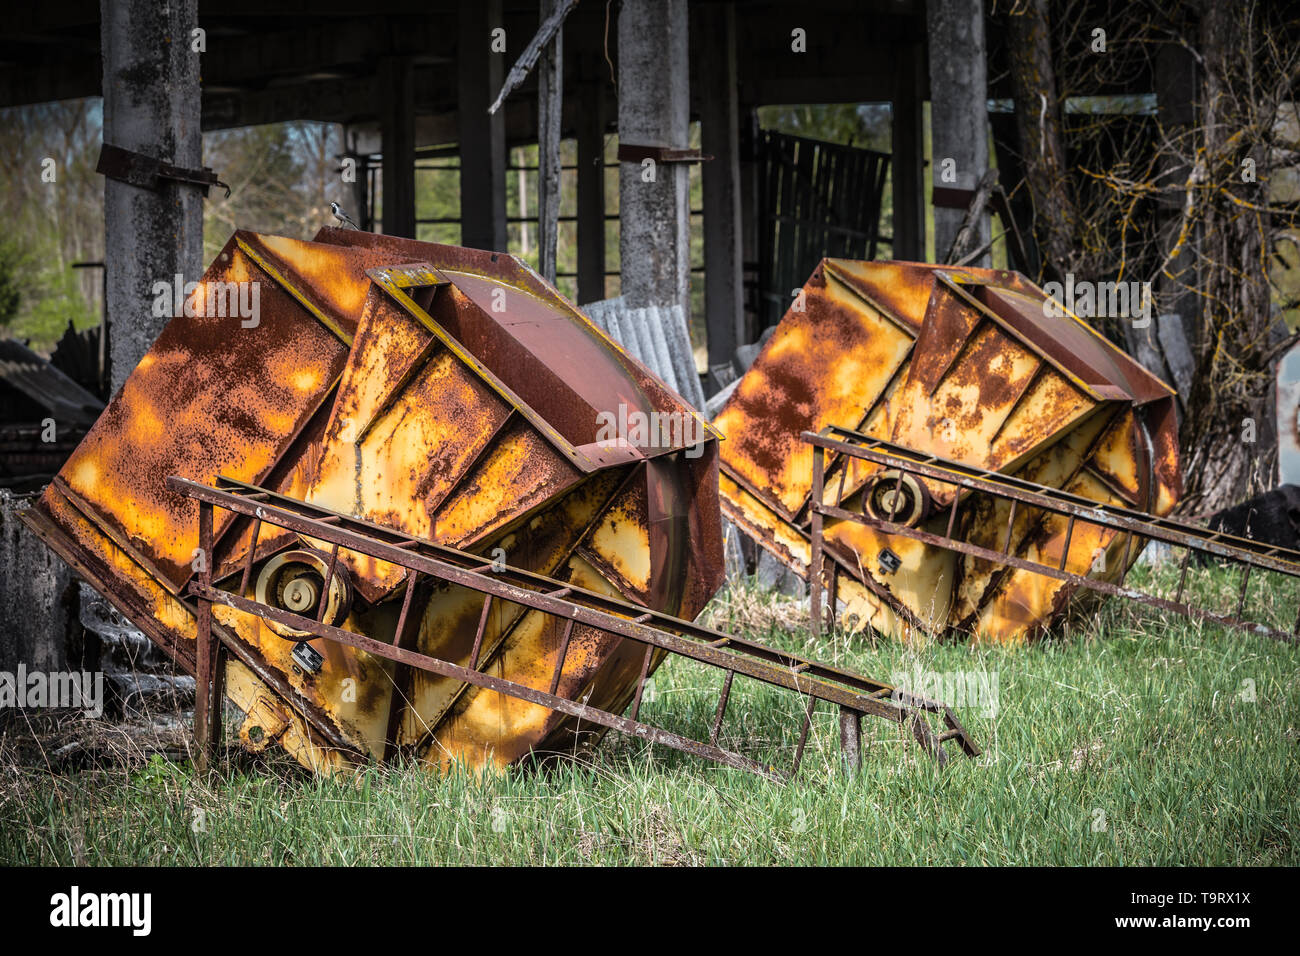 Rusted feed silos in an abandoned farm in Belarus Chernobyl exclusion zone, - Stock Image